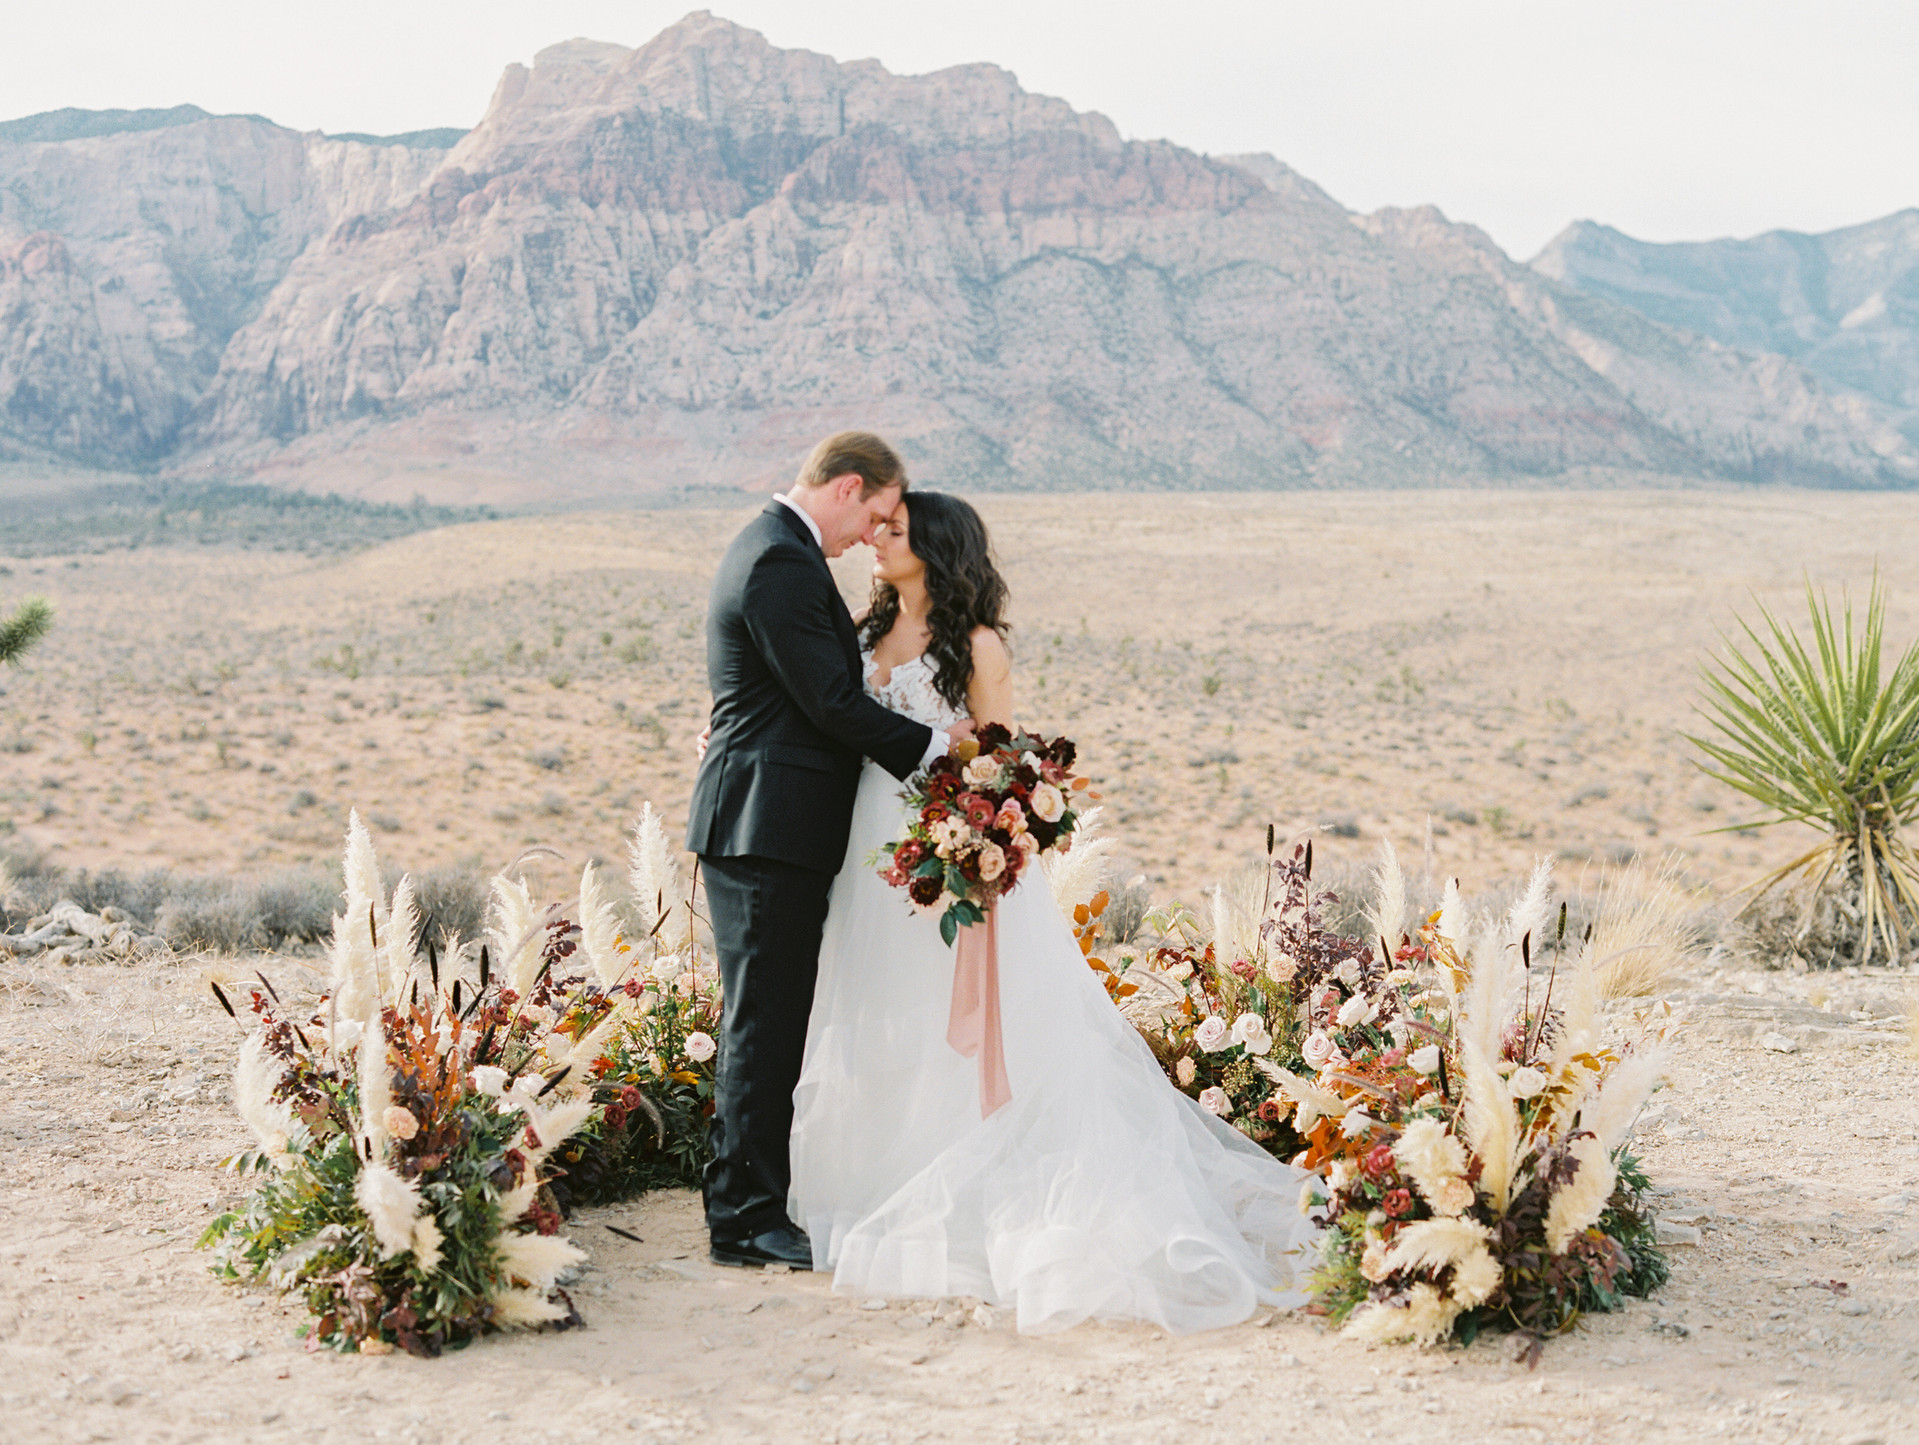 Half moon ceremony florals with pampas grass, florals, and fall foliage. Photo: Gaby Jeter